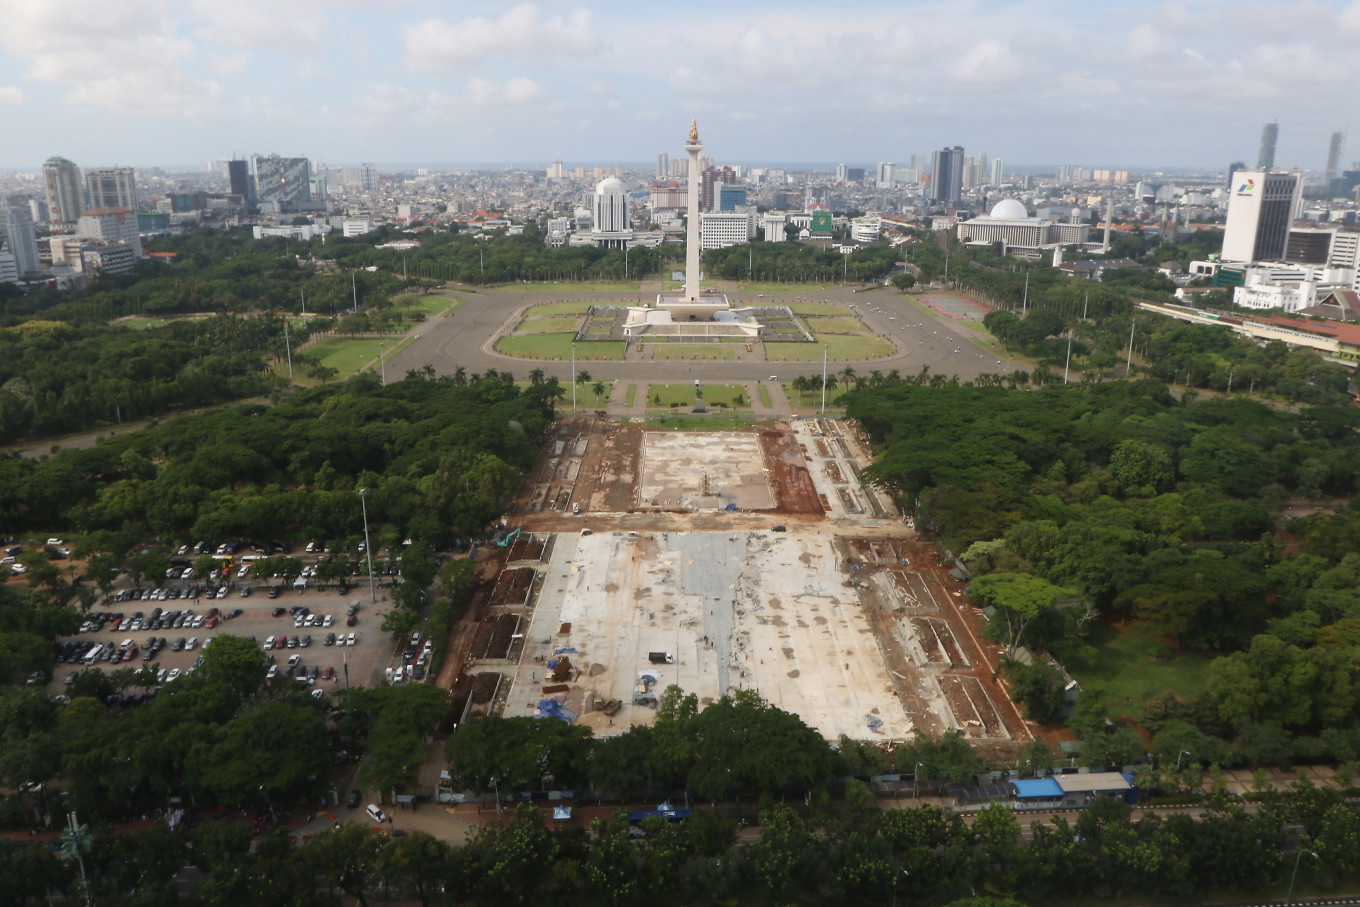 City under scrutiny over Monas revitalization, uprooting of hundreds of trees